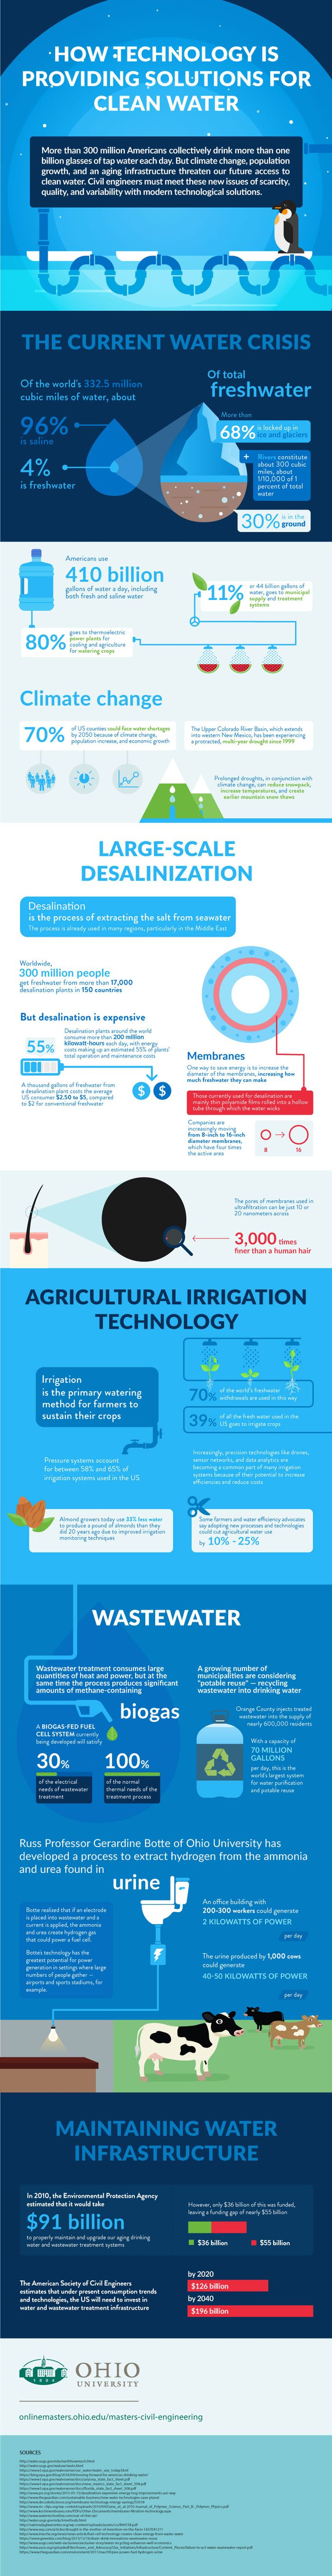 Technology Solutions for Creating New Clean Water Resources - Infographic